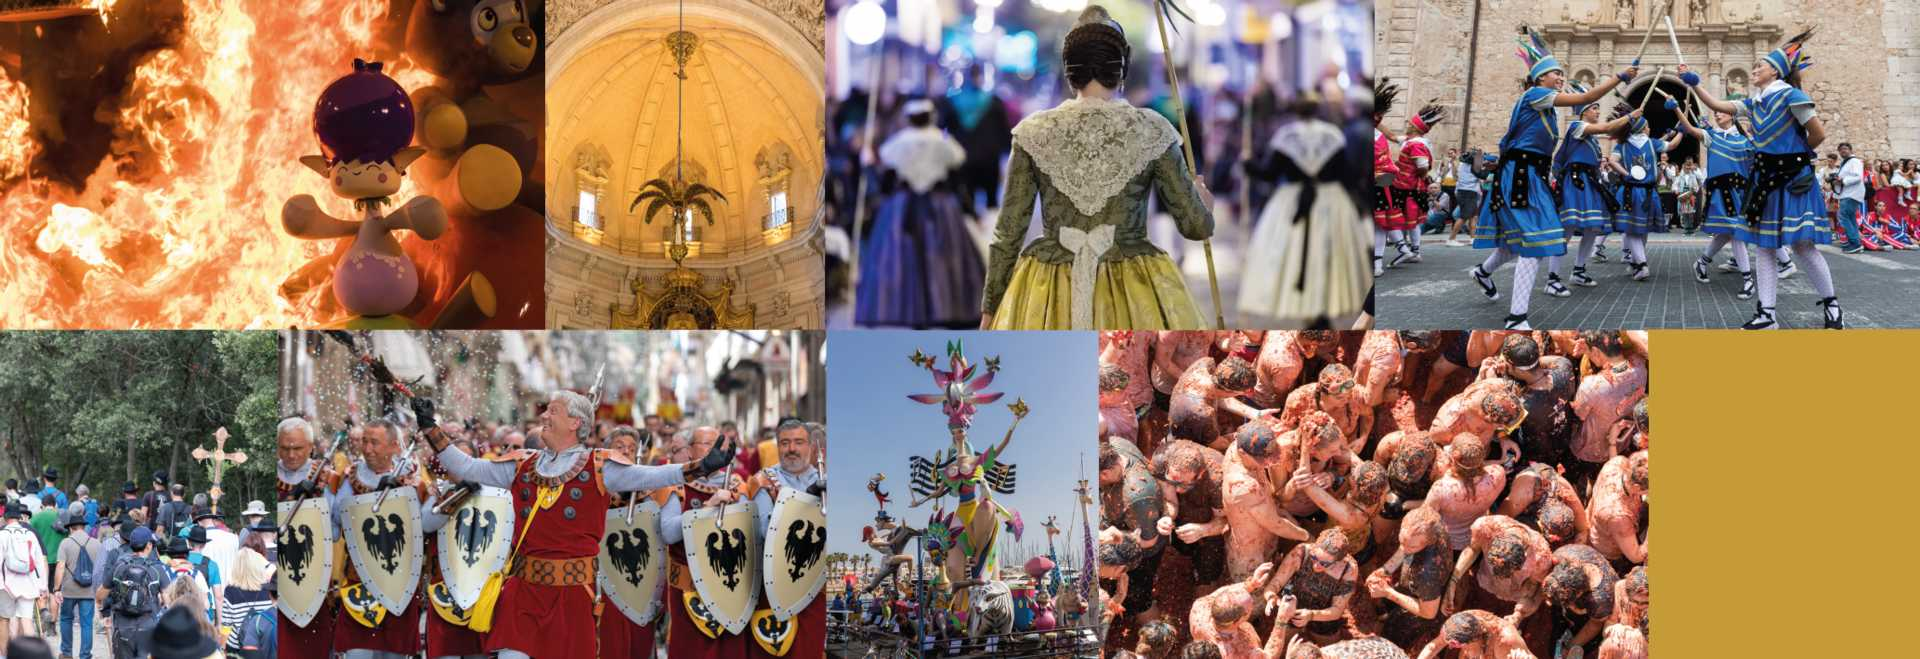 Festivity of Virgen del Olivar